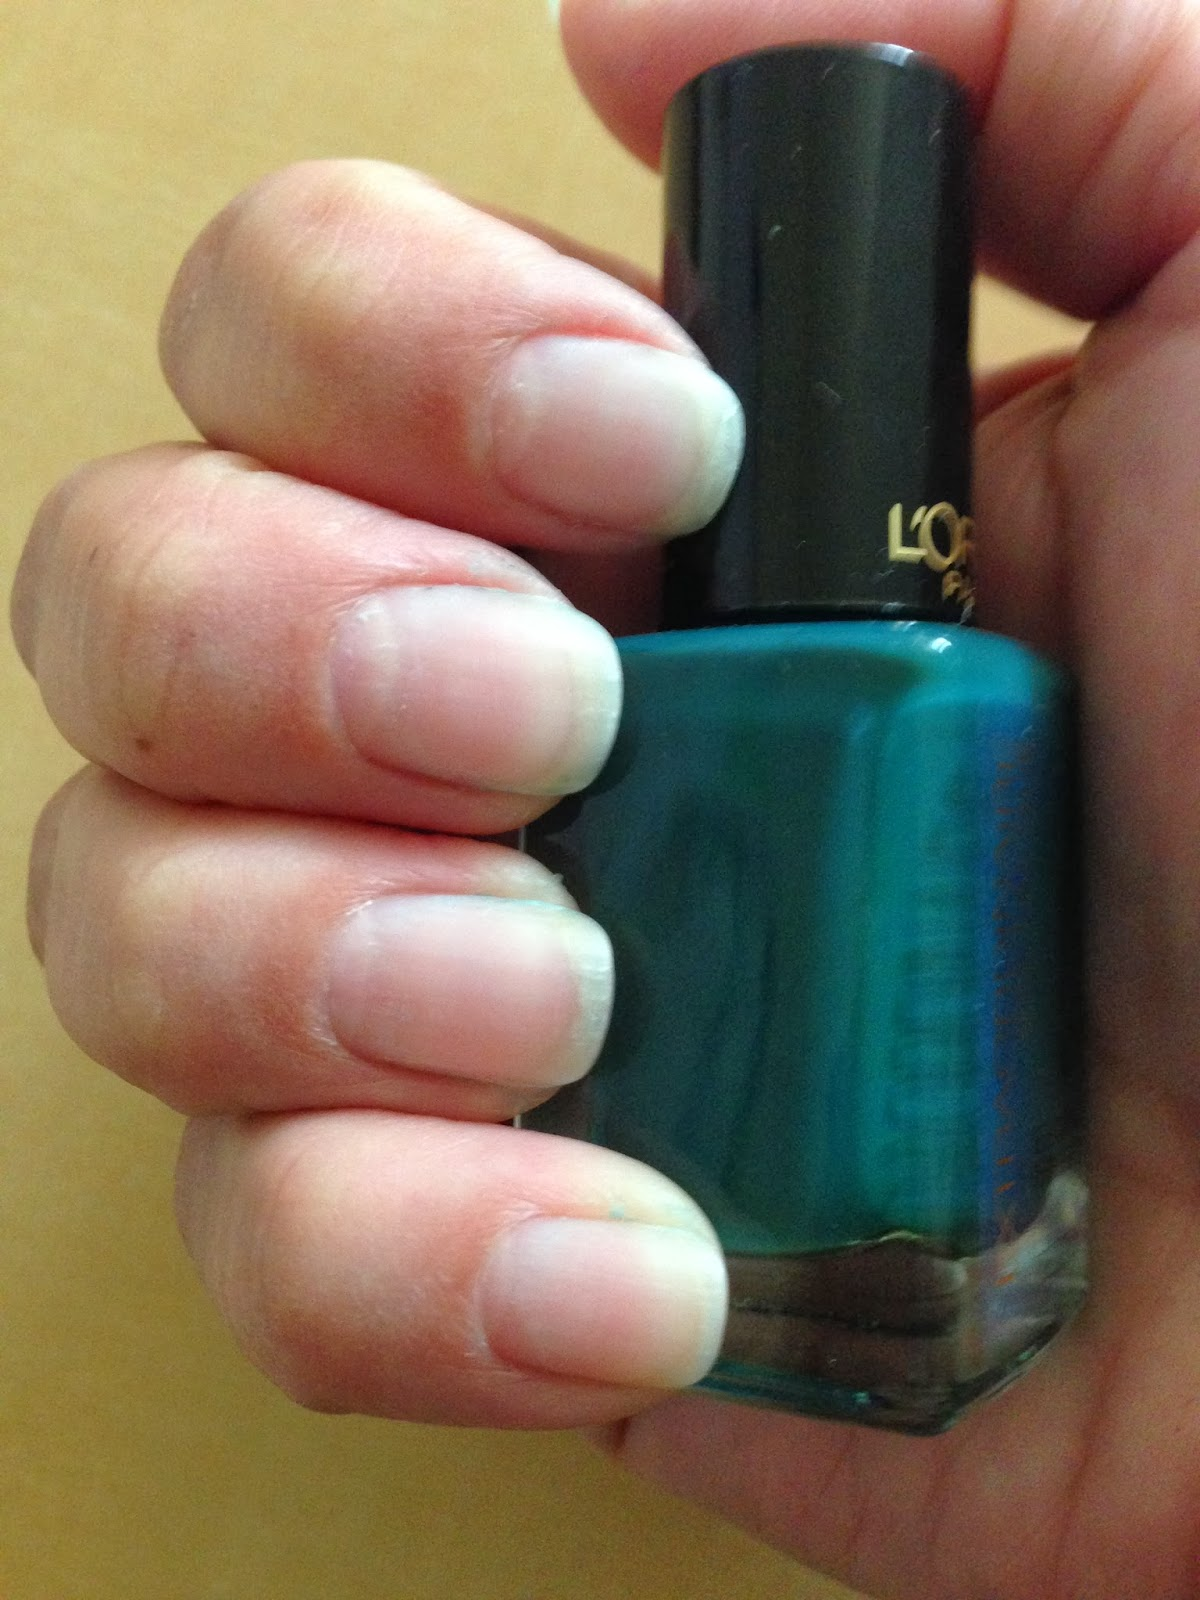 after using polish, easy to remove, loreal gel nail polish, results after 10 days